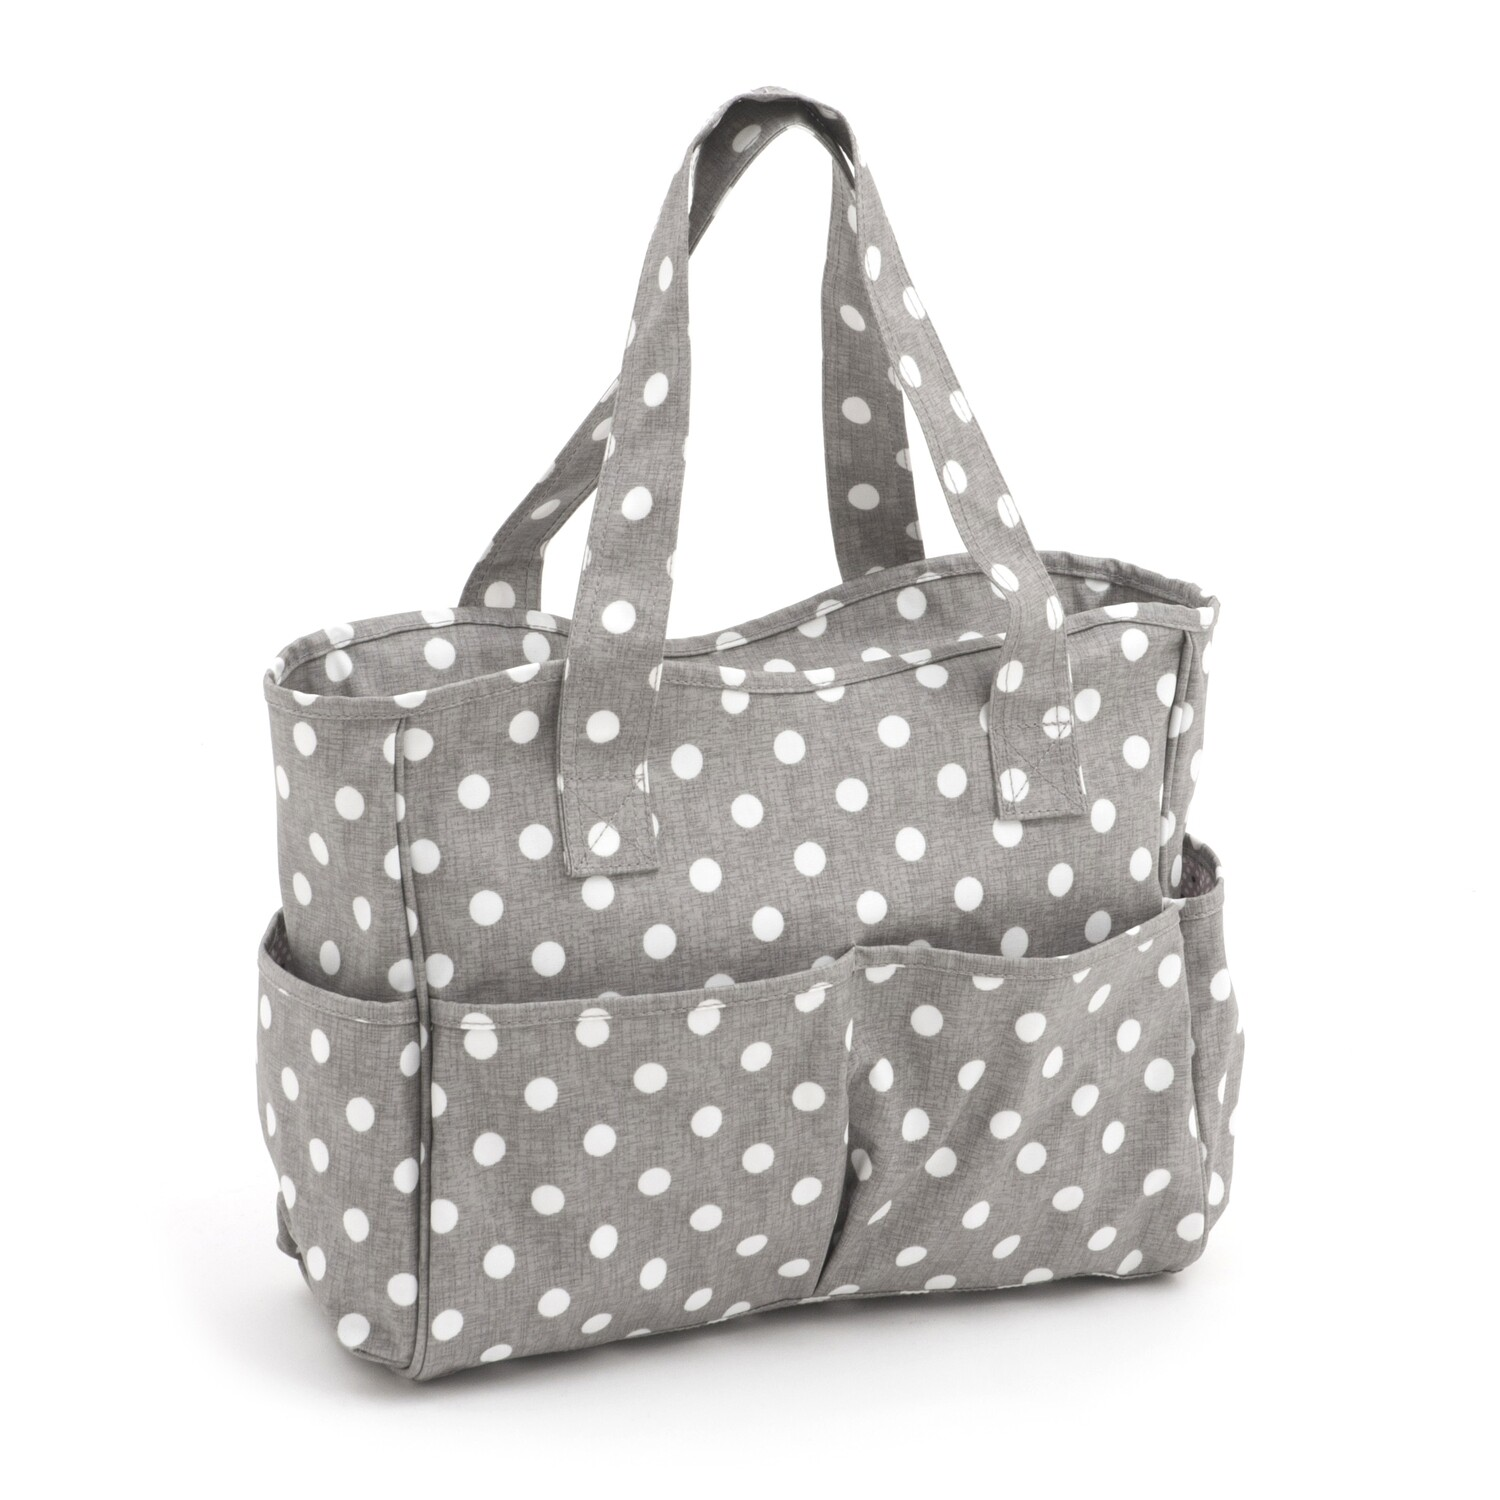 Craft Bag - Grey Linen Polka